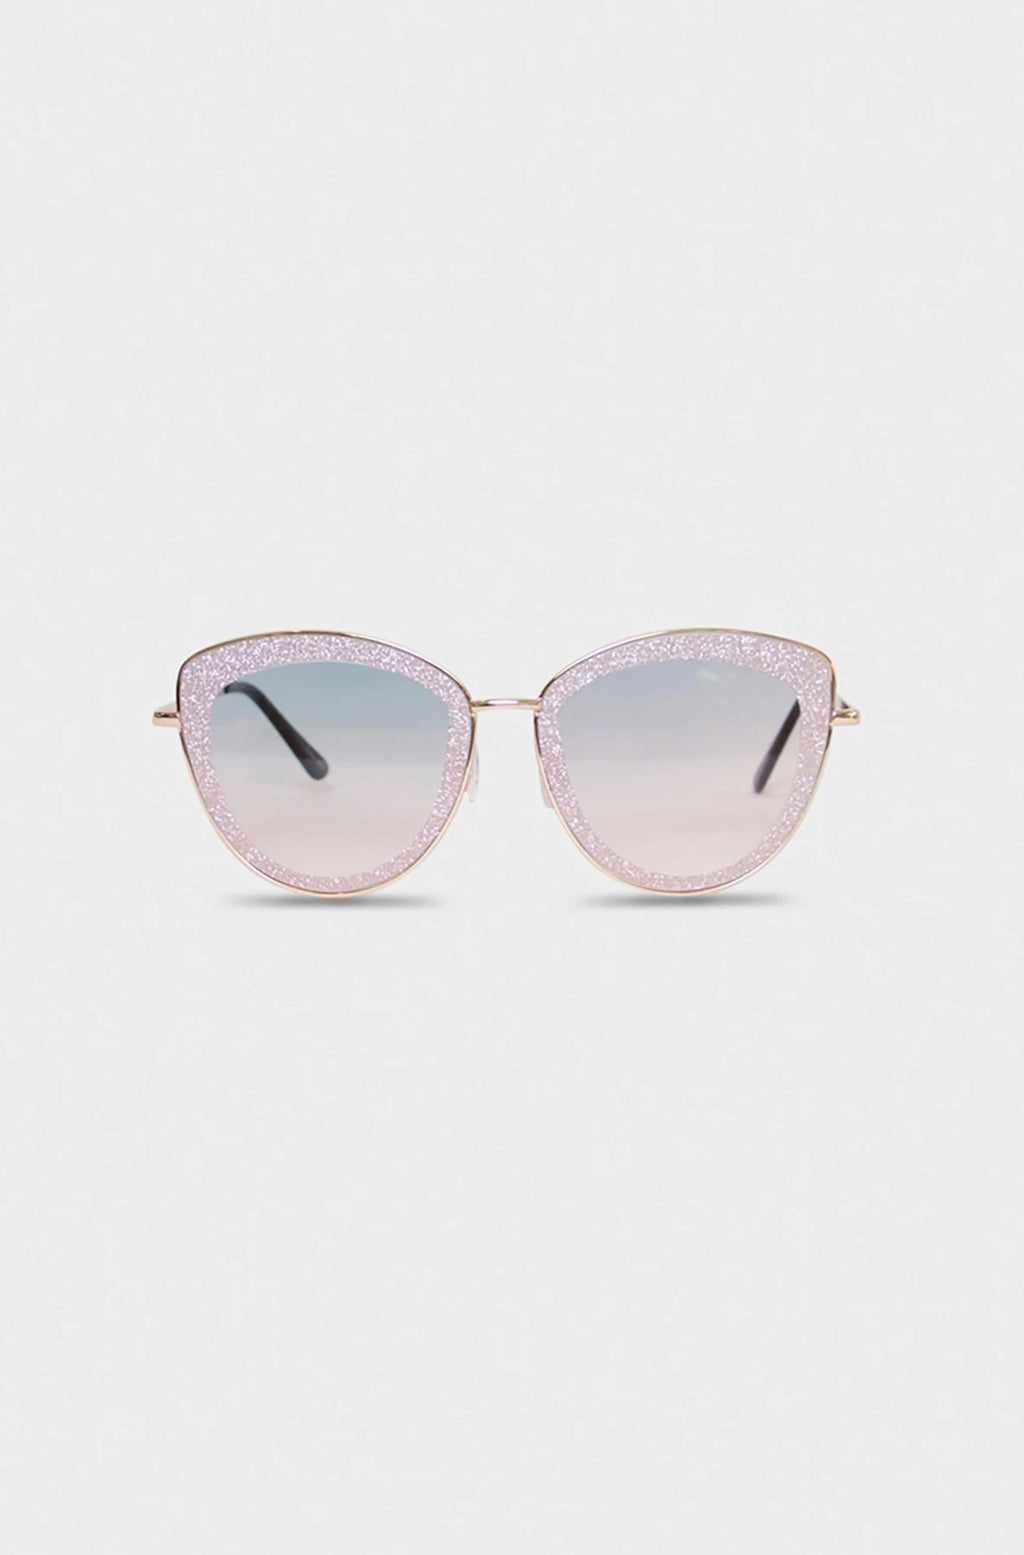 Shiny Light Pink Glasses